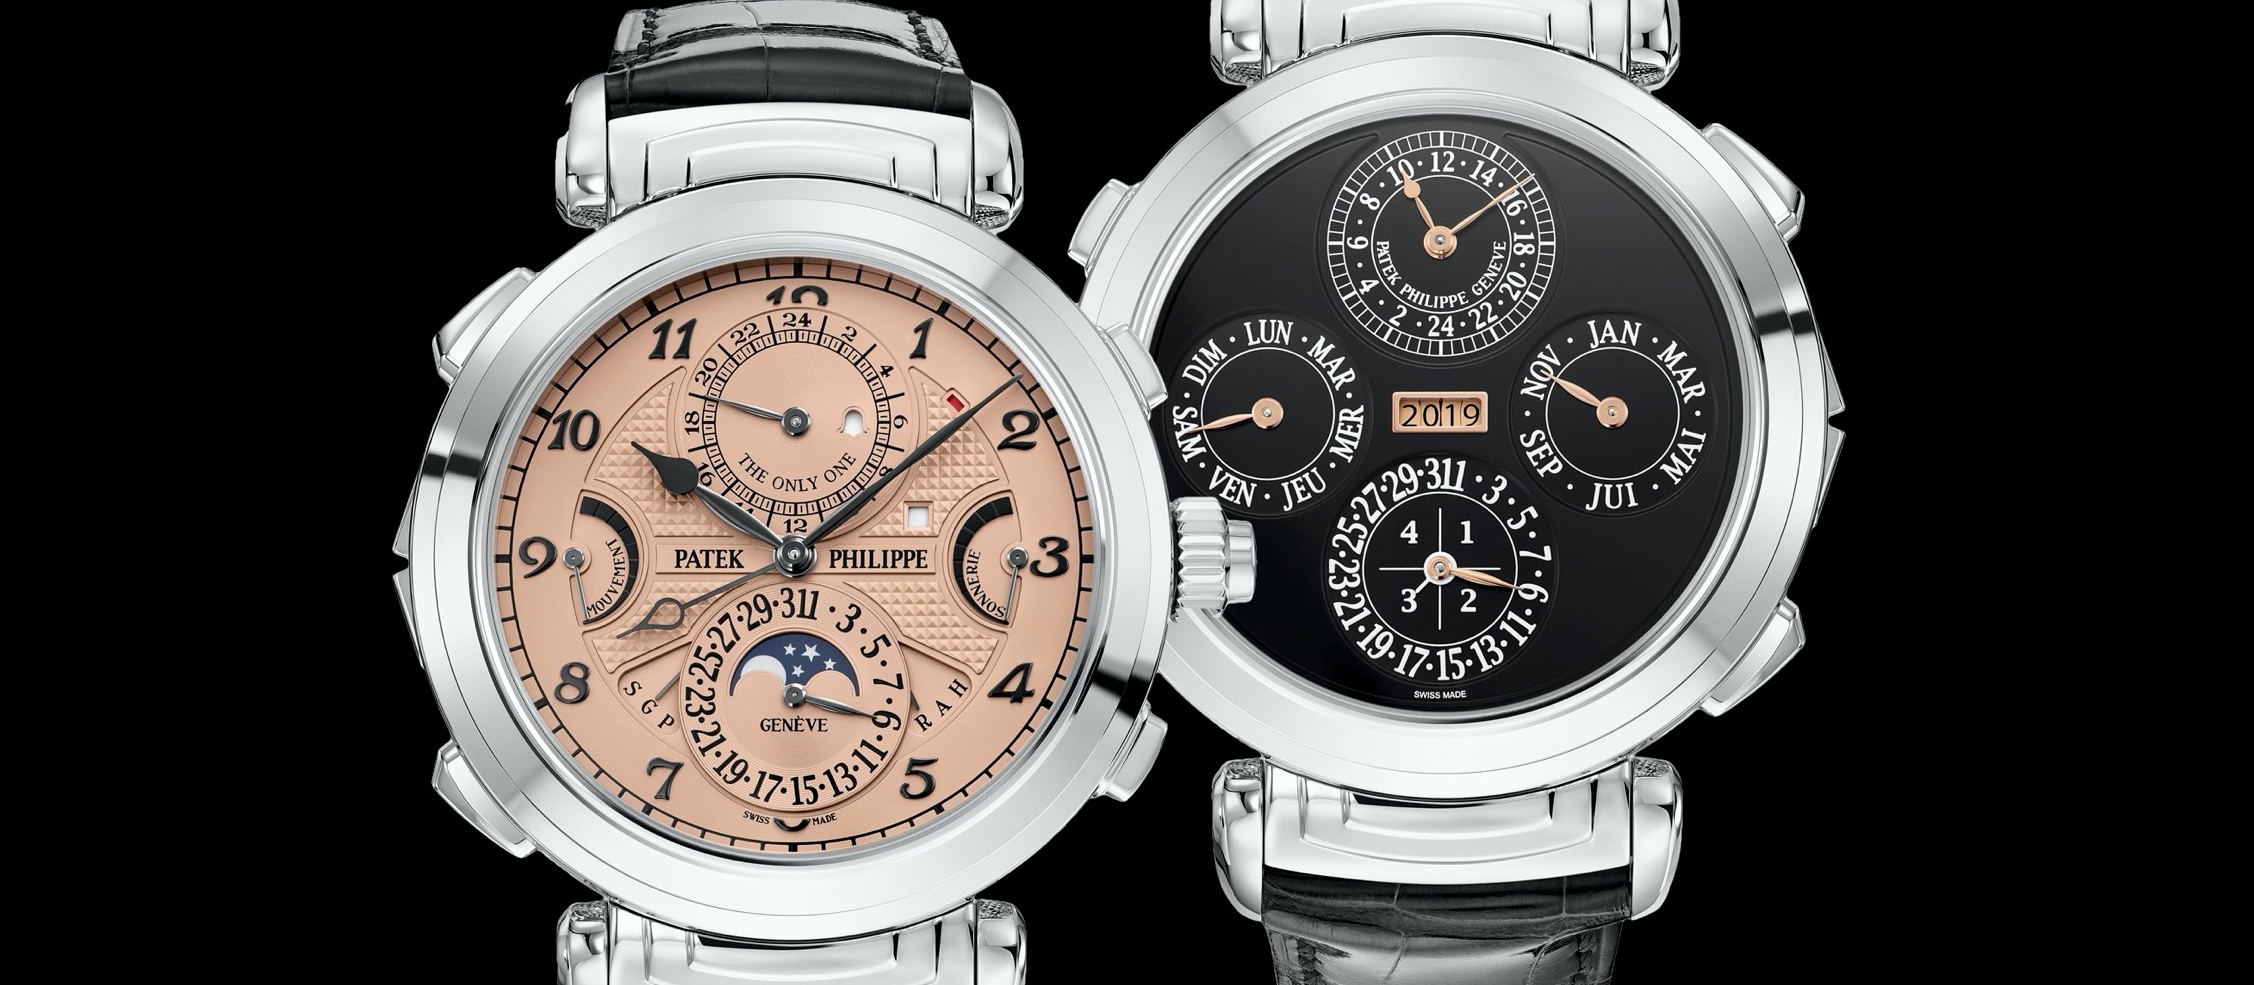 Patek Philippe Grandmaster Chime 6300A Only Watch 2019 - cover5